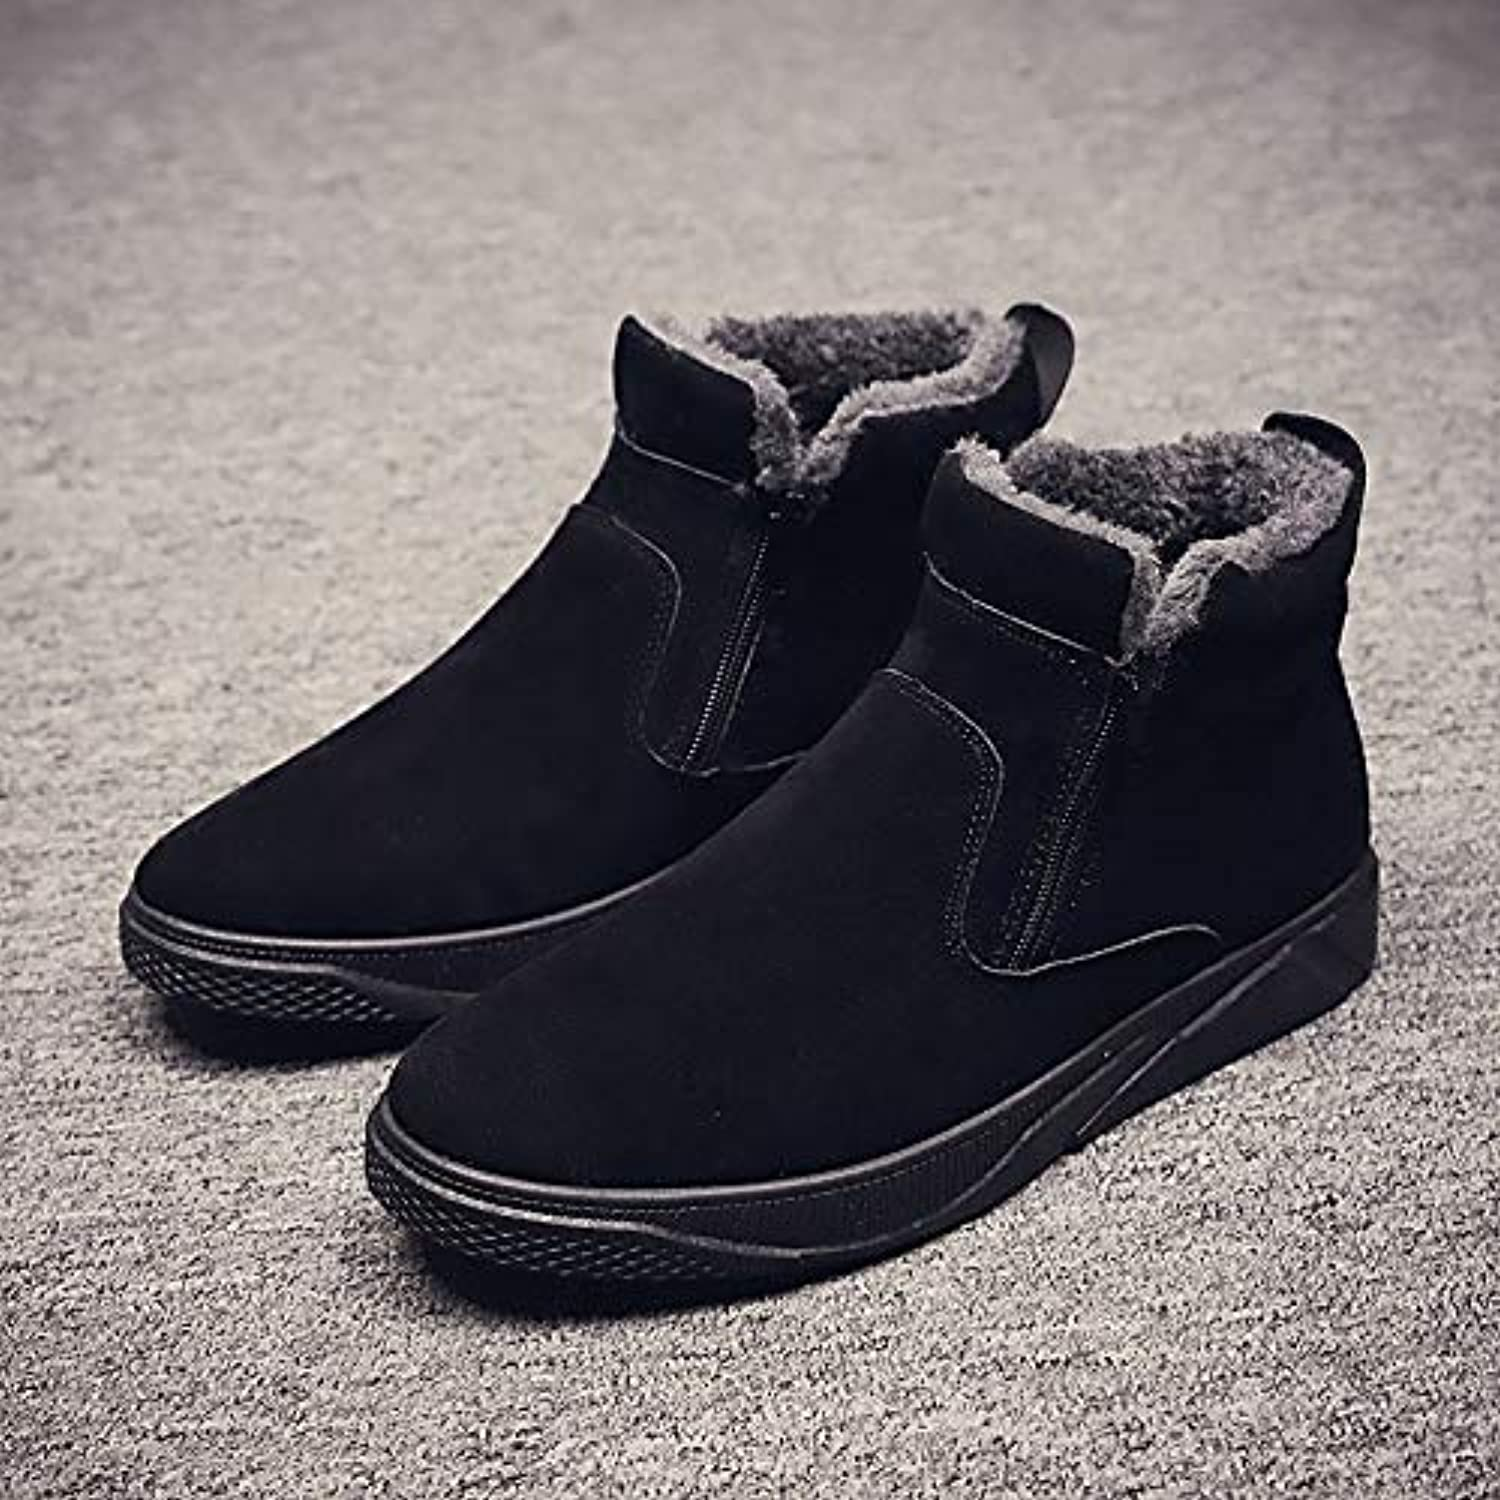 LOVDRAM Boots Men's Martin Boots Men'S Boots Winter High Top shoes Fashion Casual Boots Men'S Middle Boots Leather Boots Winter Cotton shoes Men